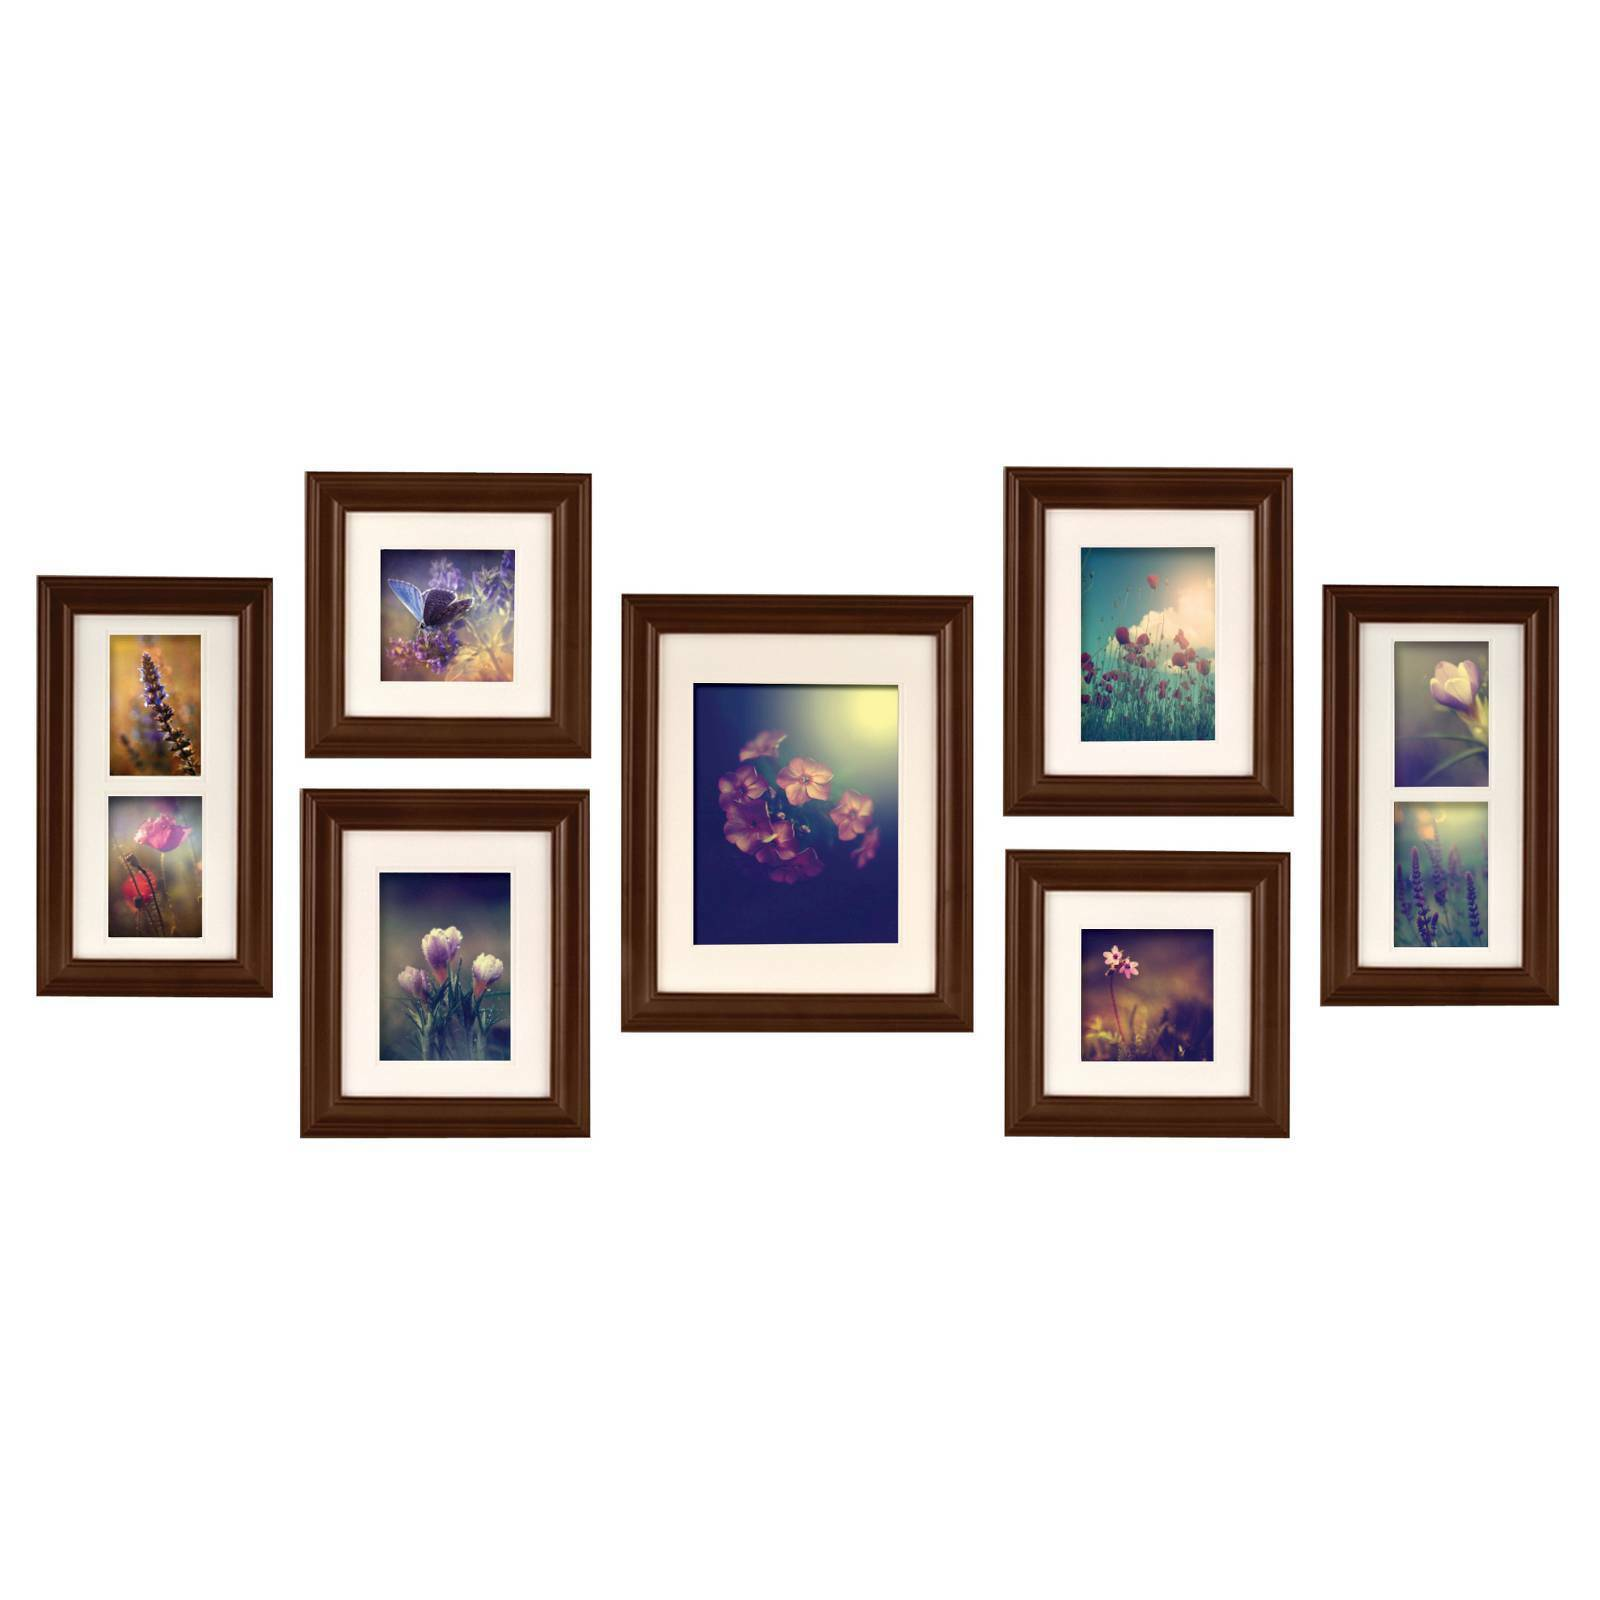 Pinnacle Frames and Accents Photo Frame Set 7pc Walnut Solid Wood | eBay